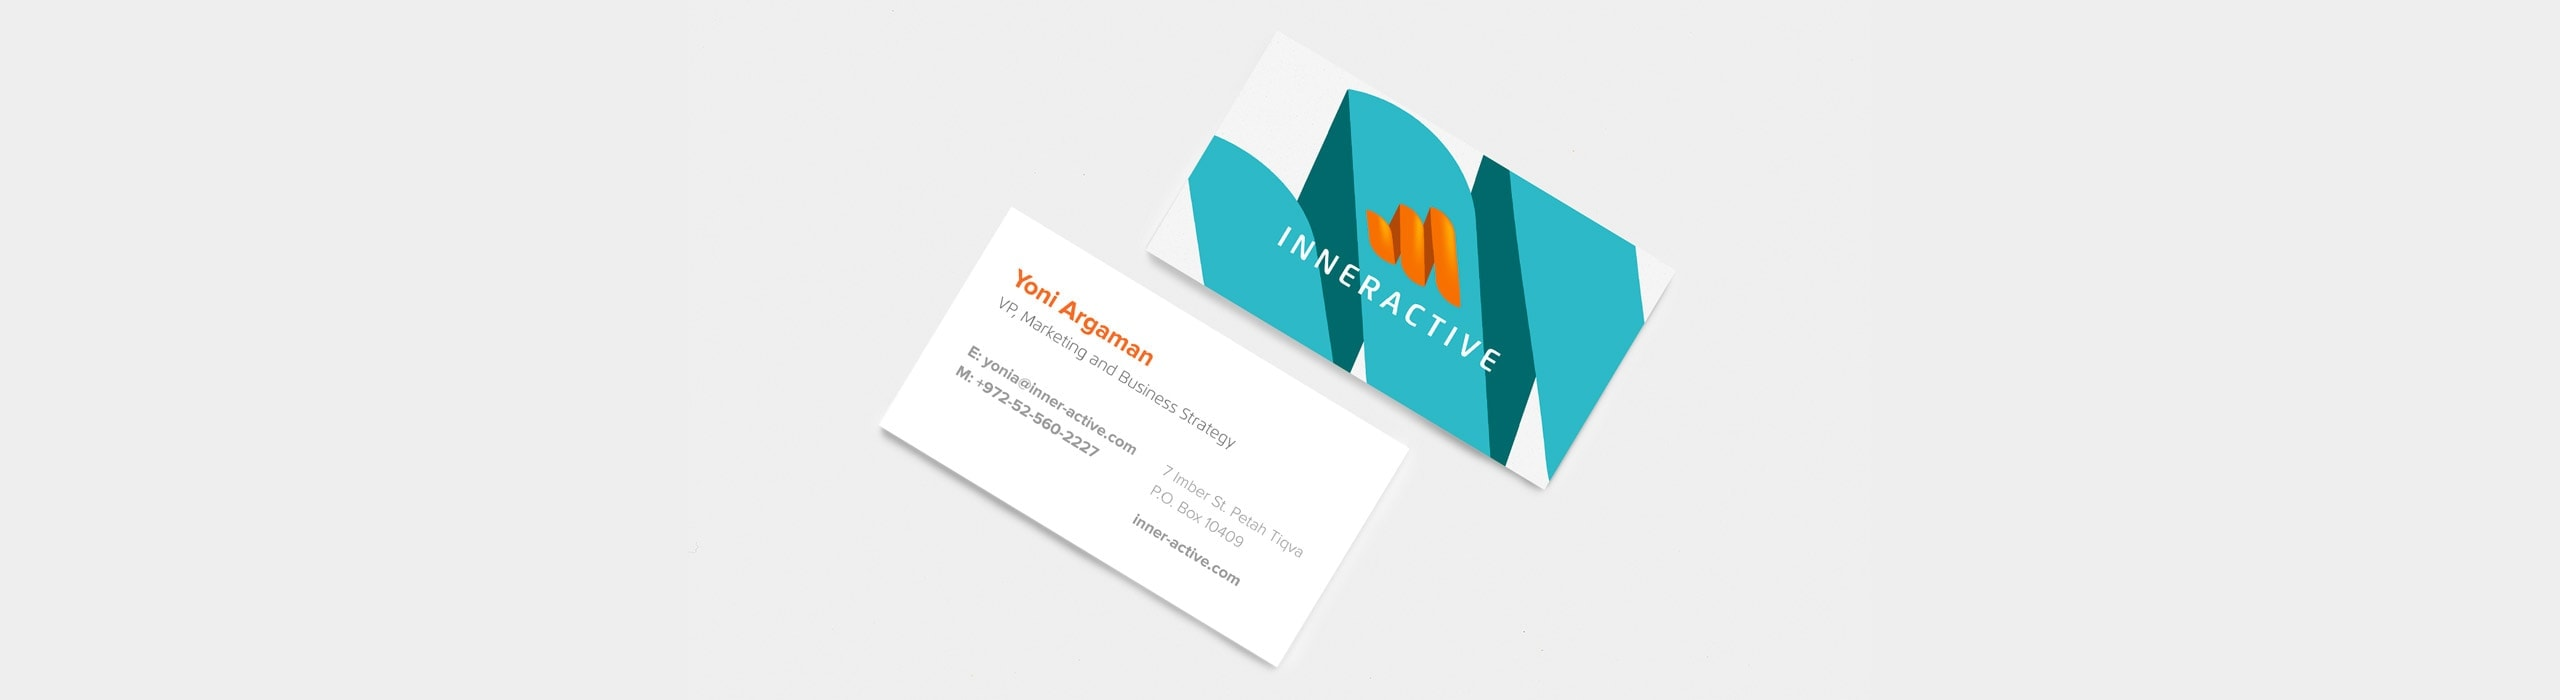 Inneractive - natie-inneractive-business-cards - Natie Branding Agency